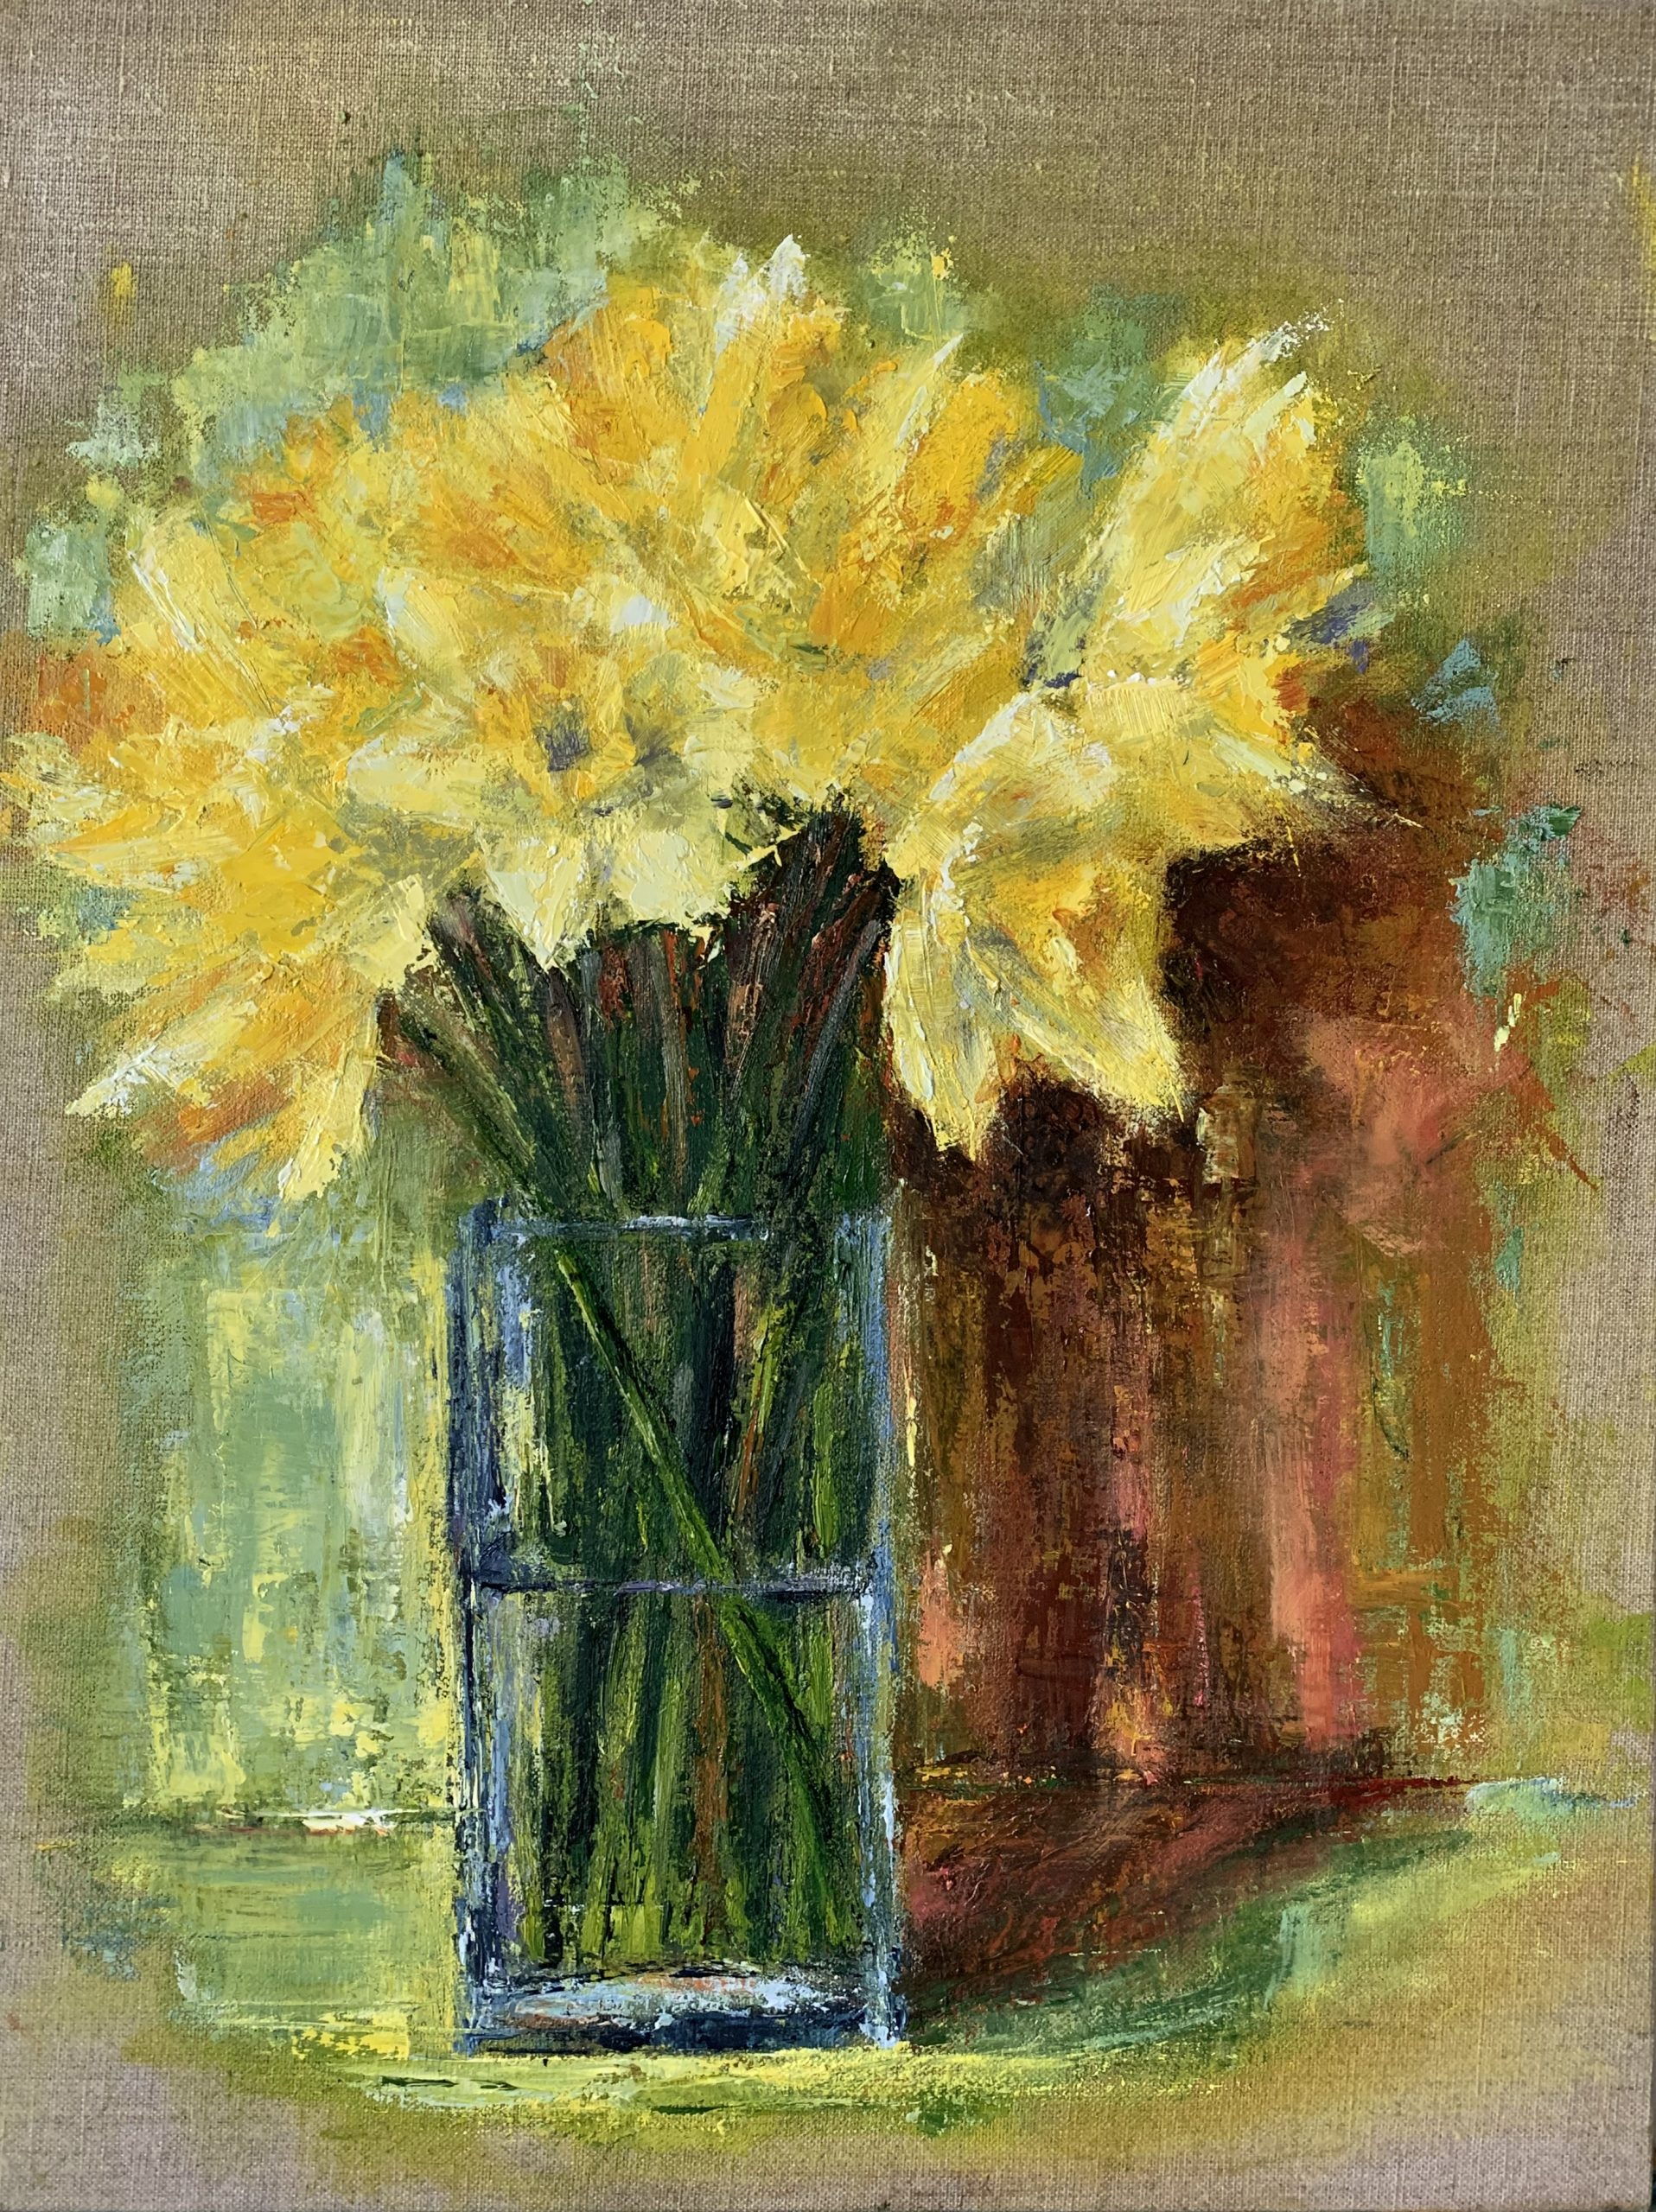 Spring light and daffodils